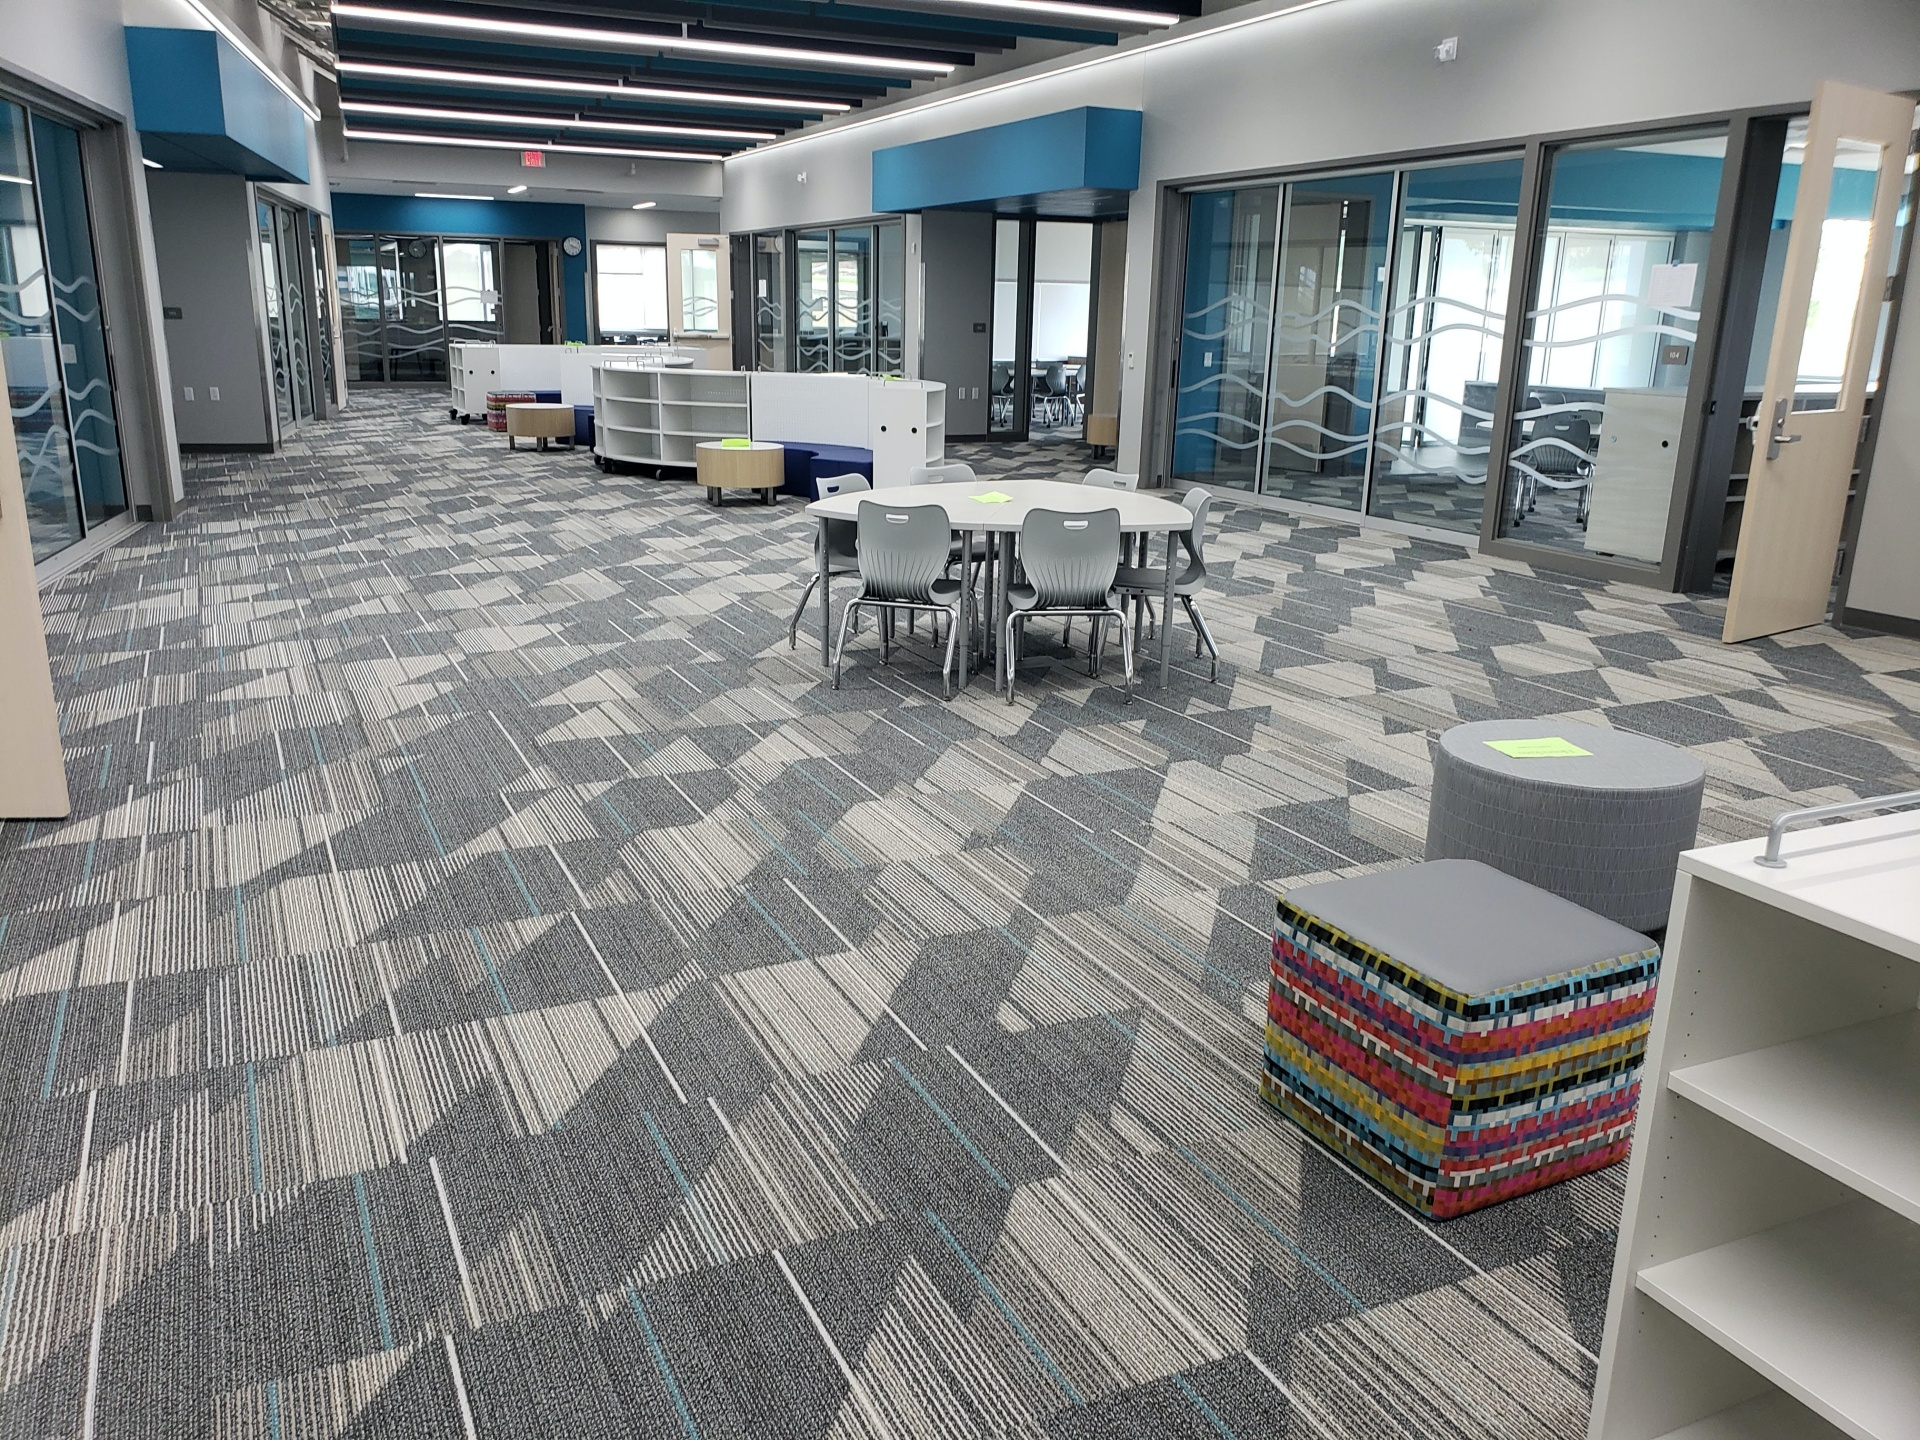 open space office with tables and chairs